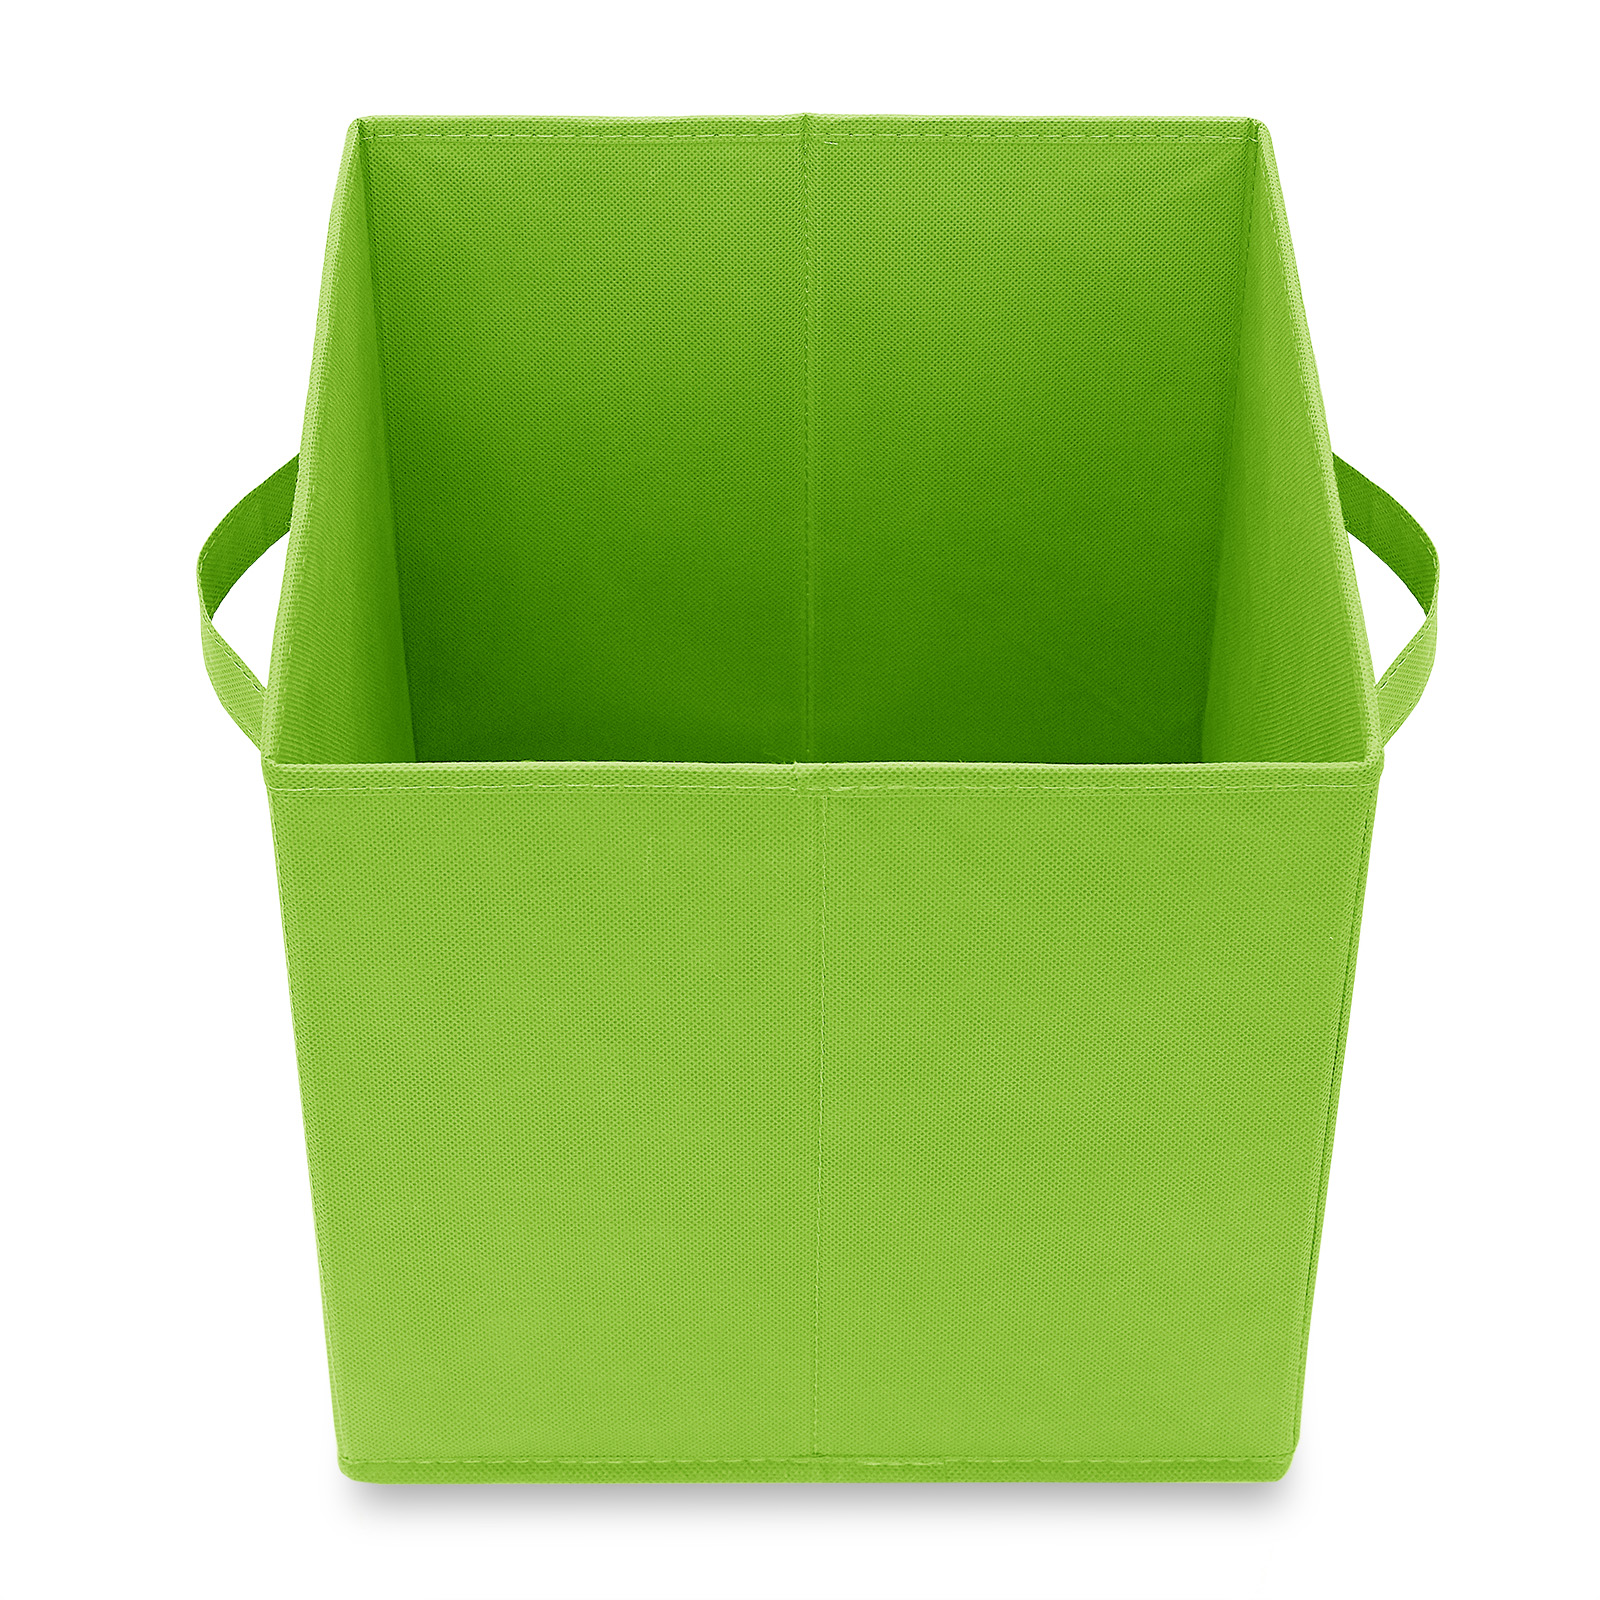 6-Collapsible-Foldable-Cloth-Fabric-Cubby-Cube-Storage-Bins-Baskets-for-Shelves thumbnail 47